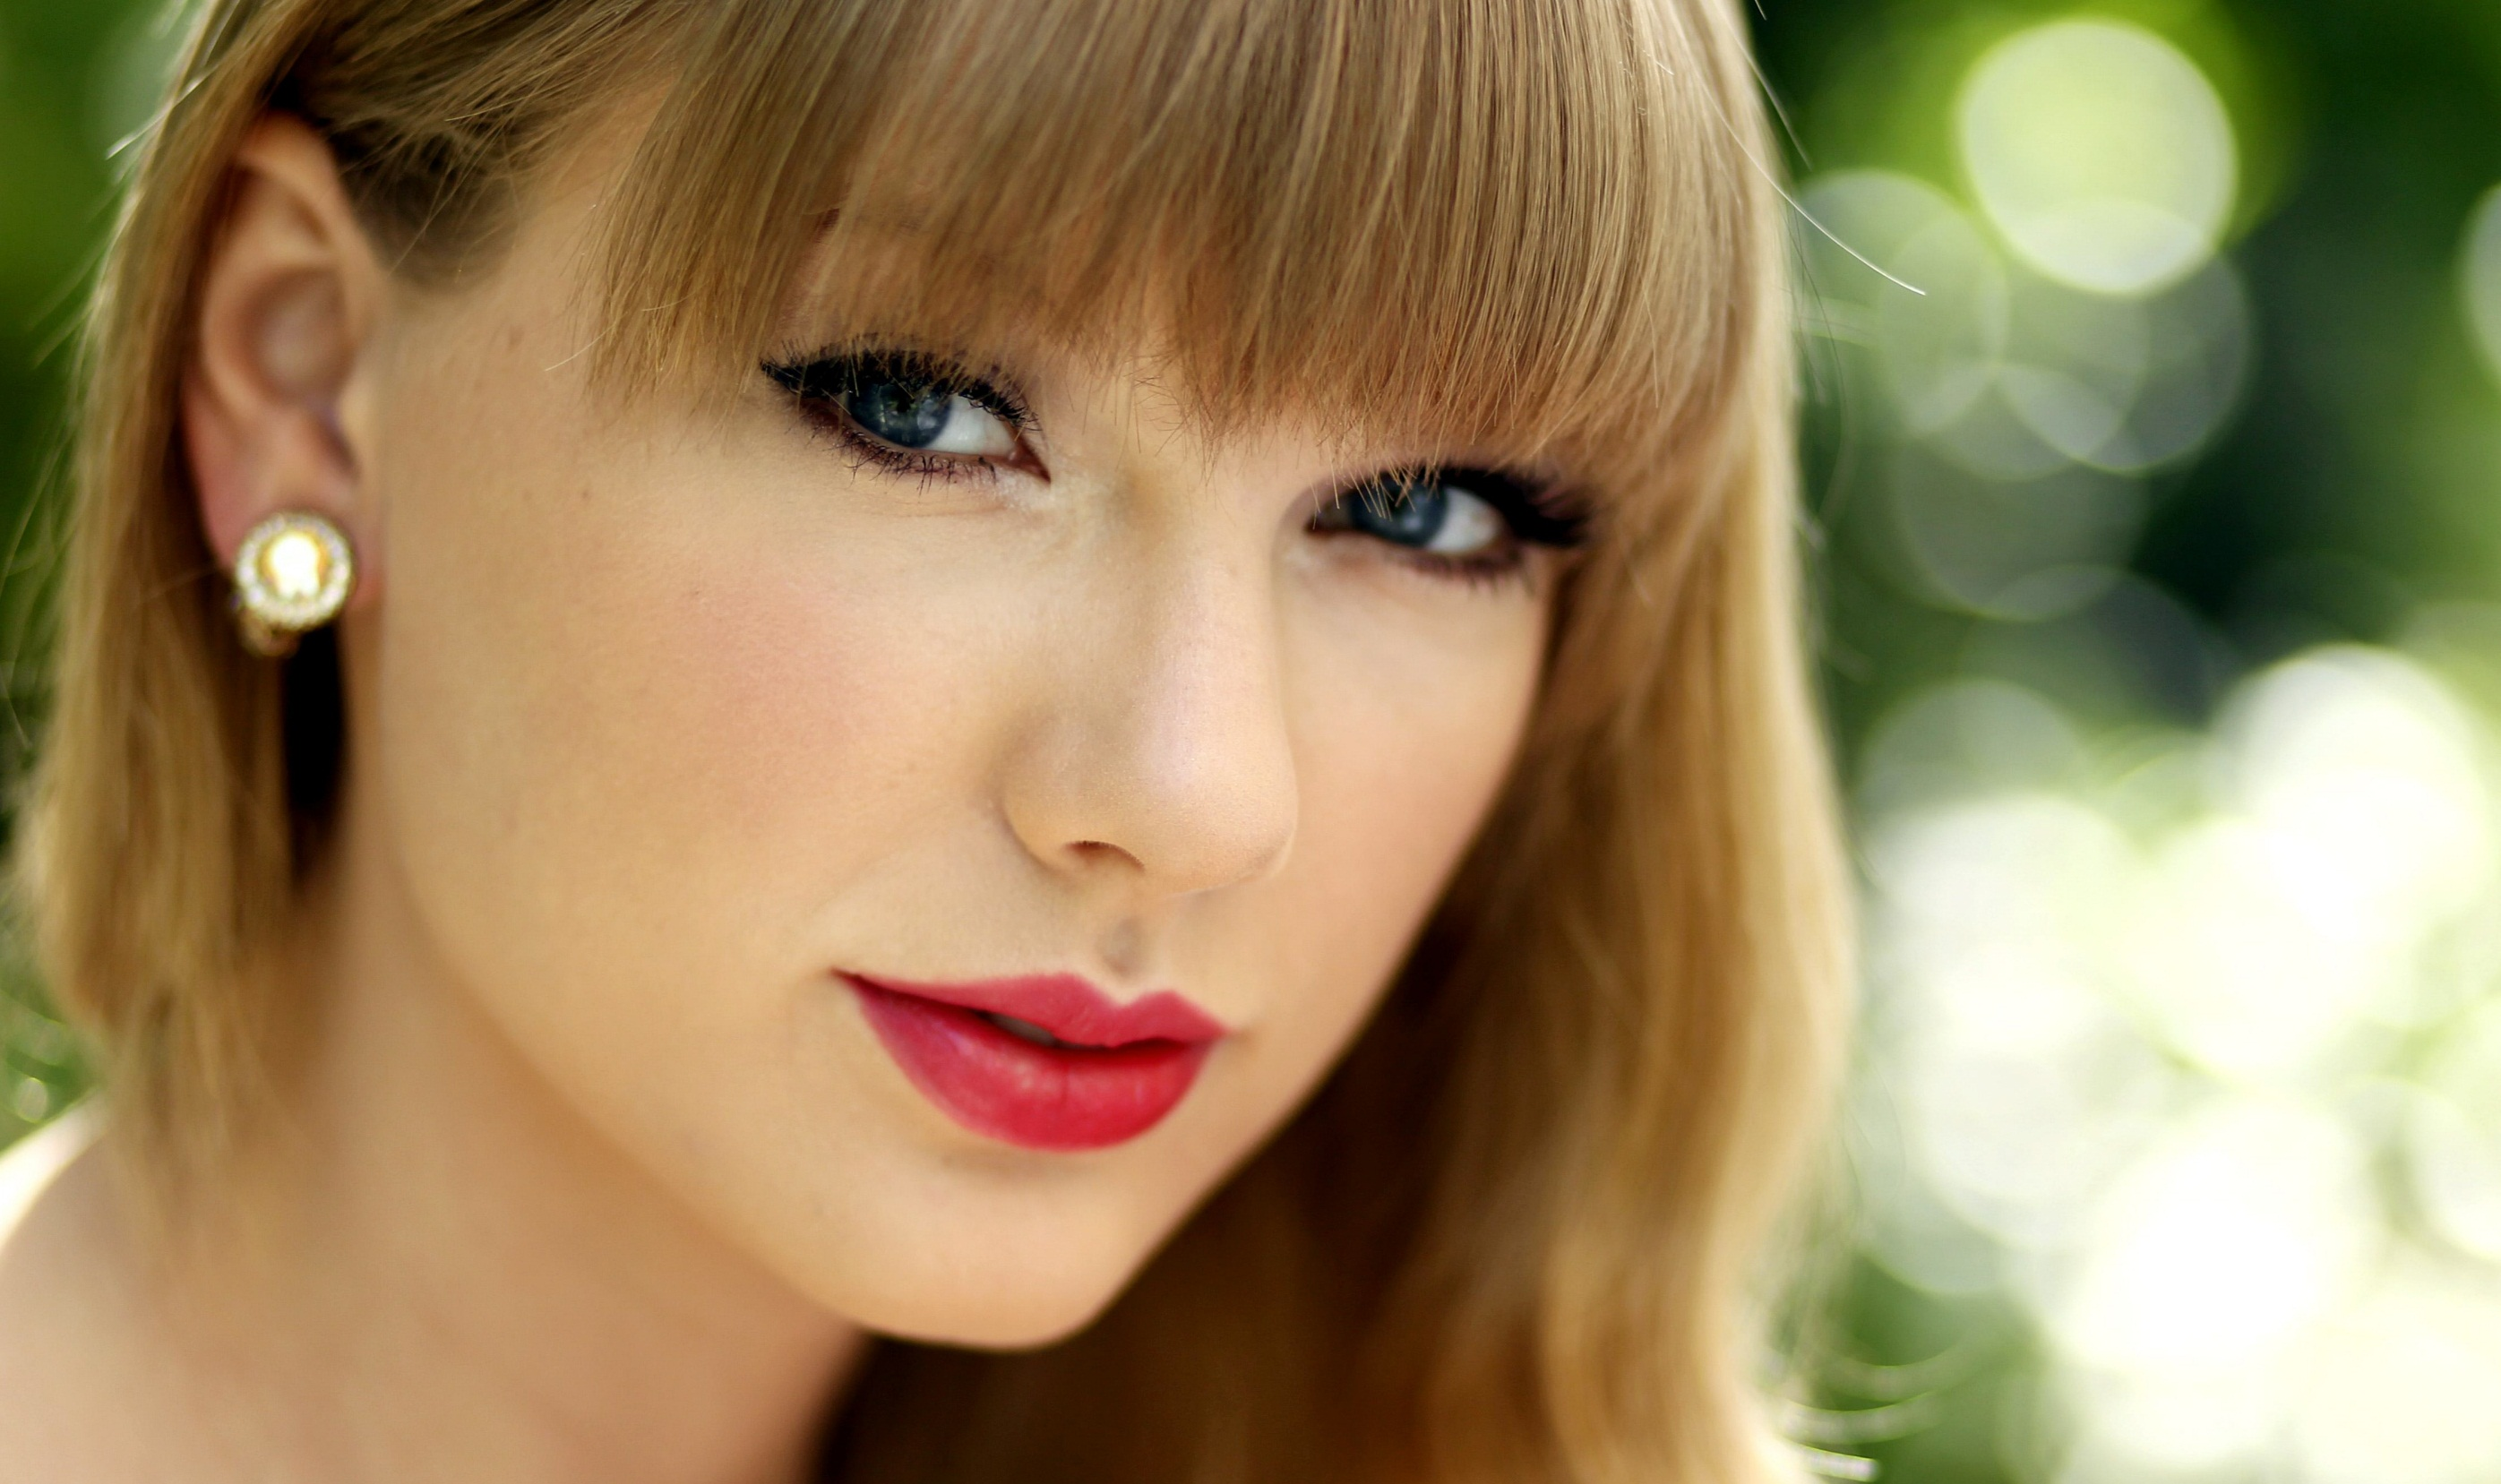 Taylor-Swift-2013-HD-Wallpaper-6